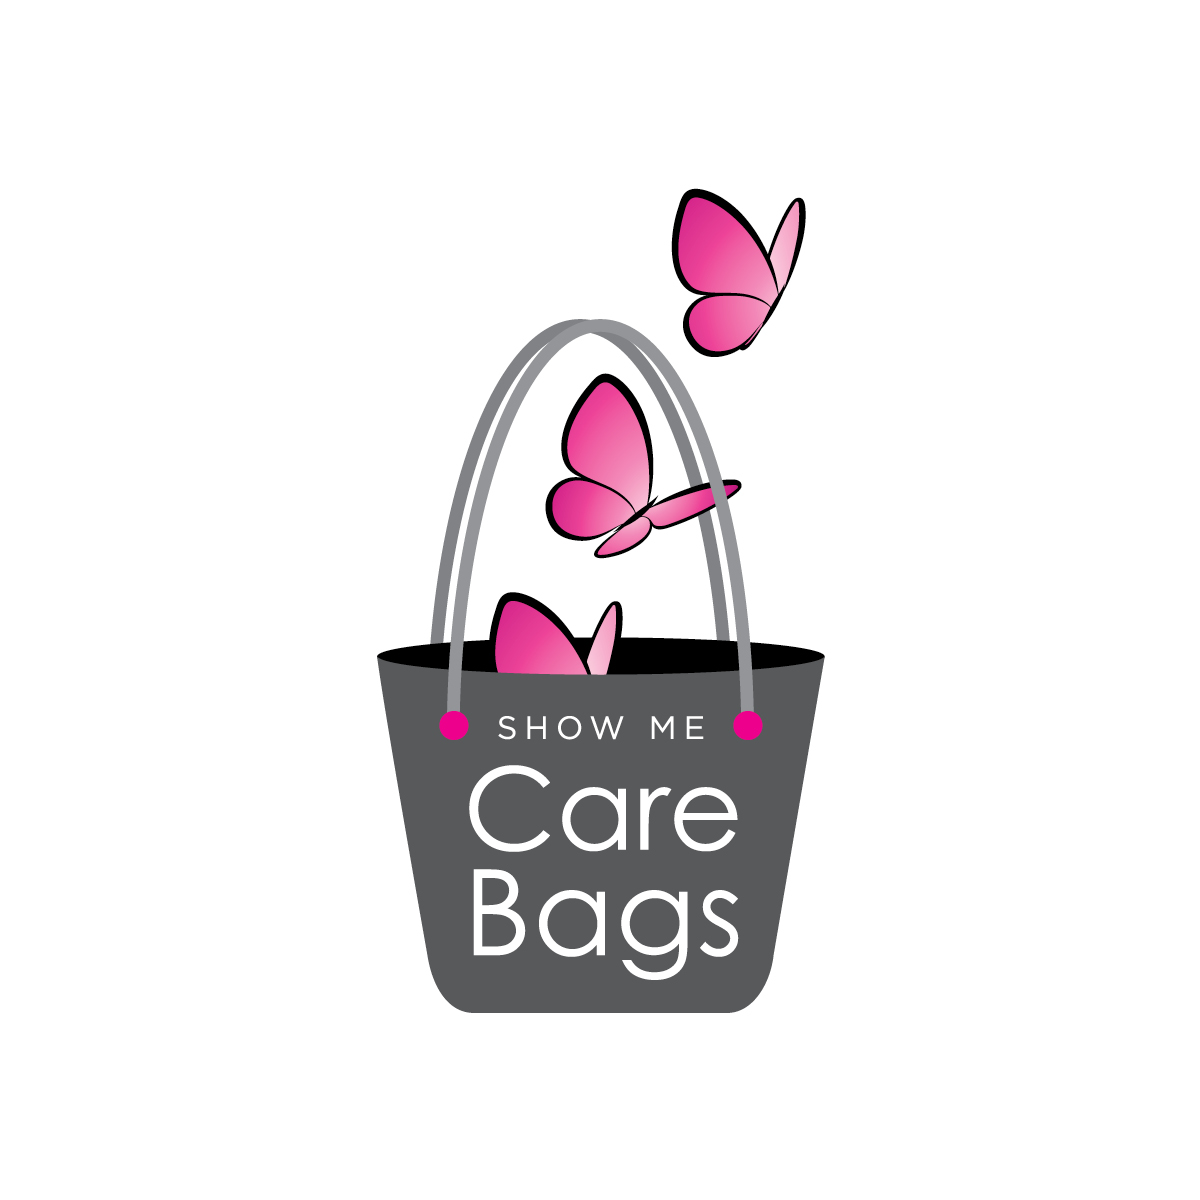 Show Me Care Bags